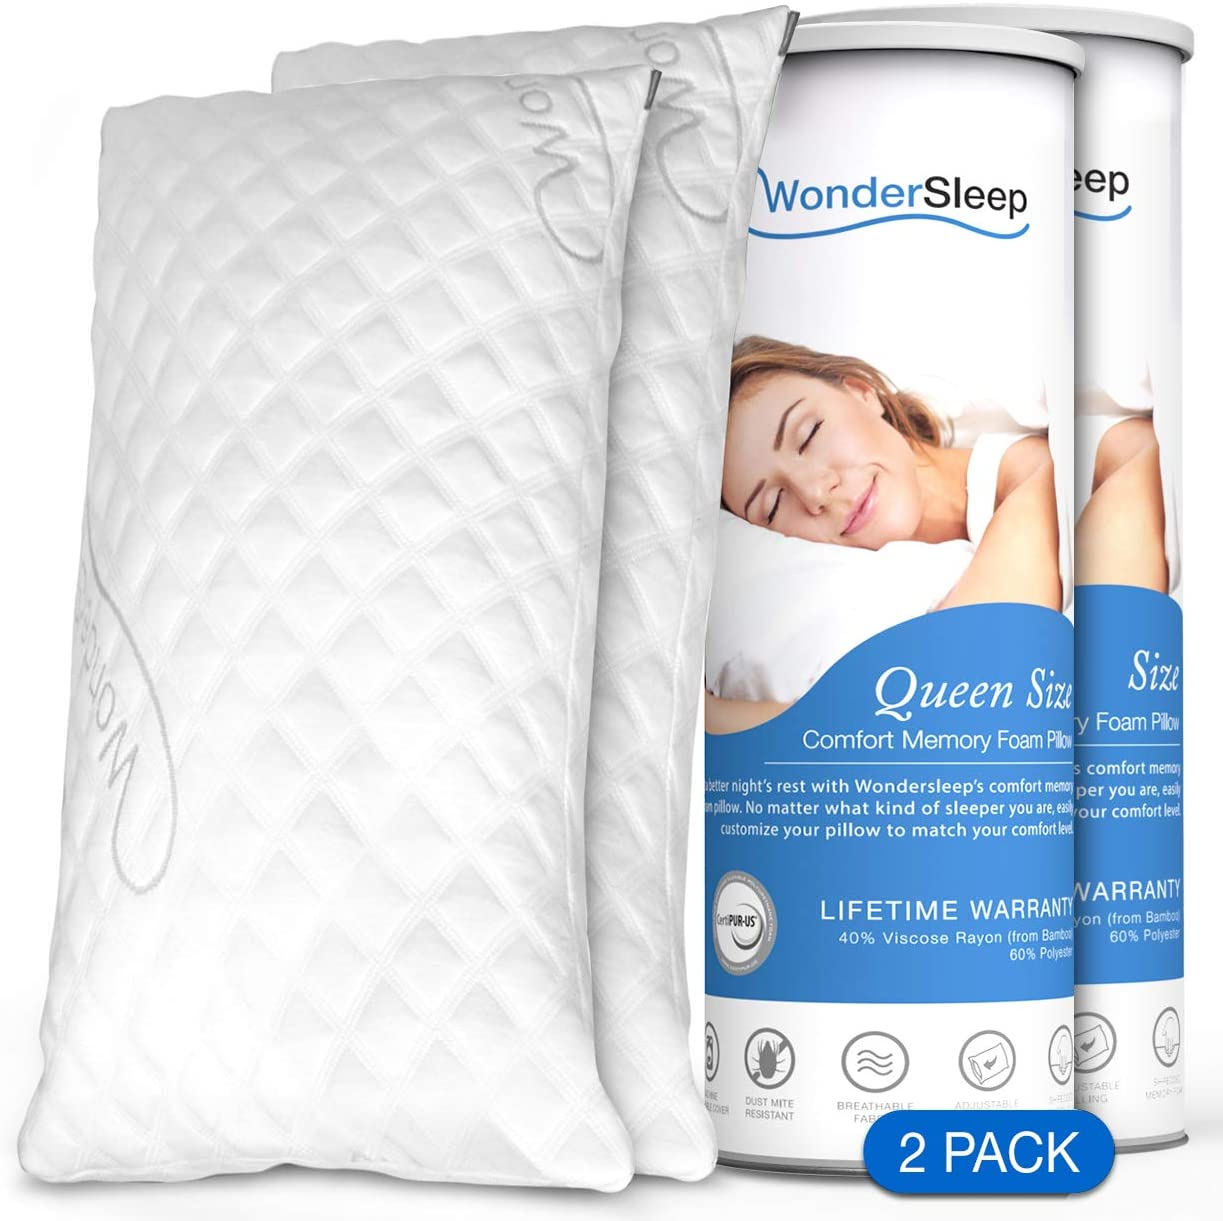 Looking for a new pillow? Look no further we have the top rated pillows for neck pain just for you.